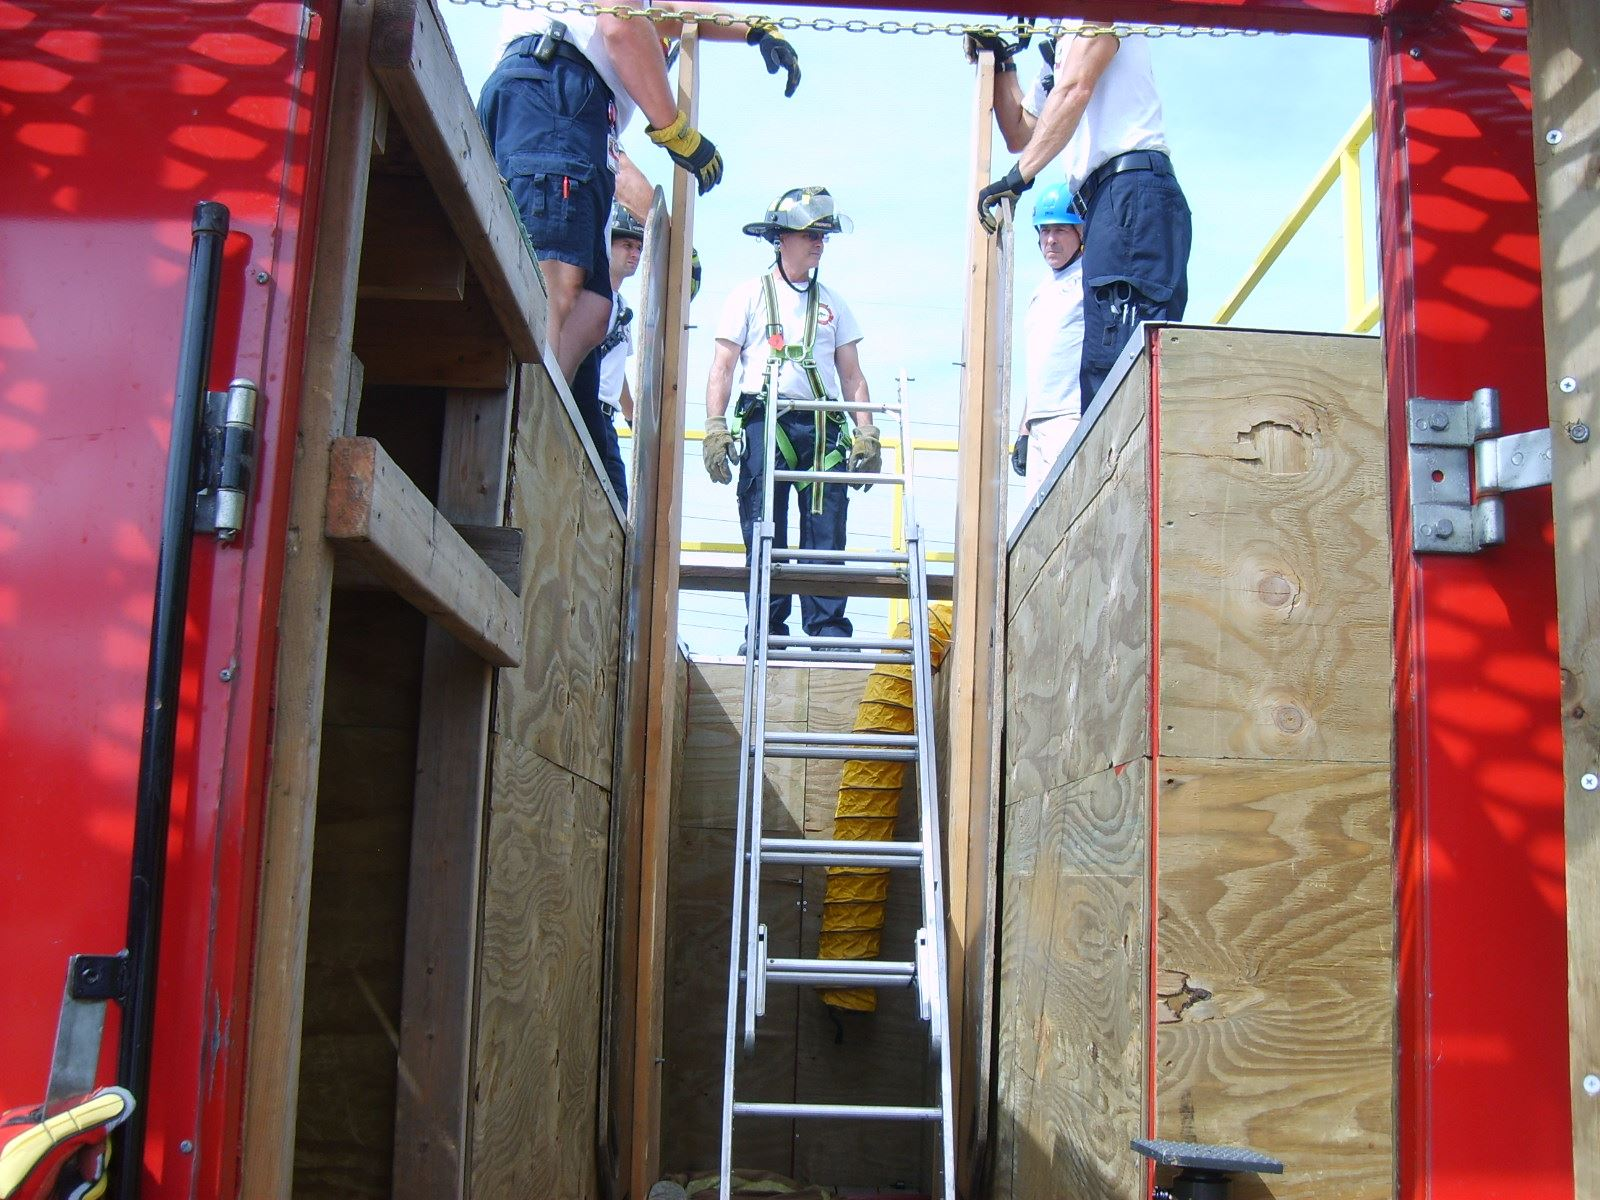 Fire Department Completes Training on Confined Space and Trench Rescue